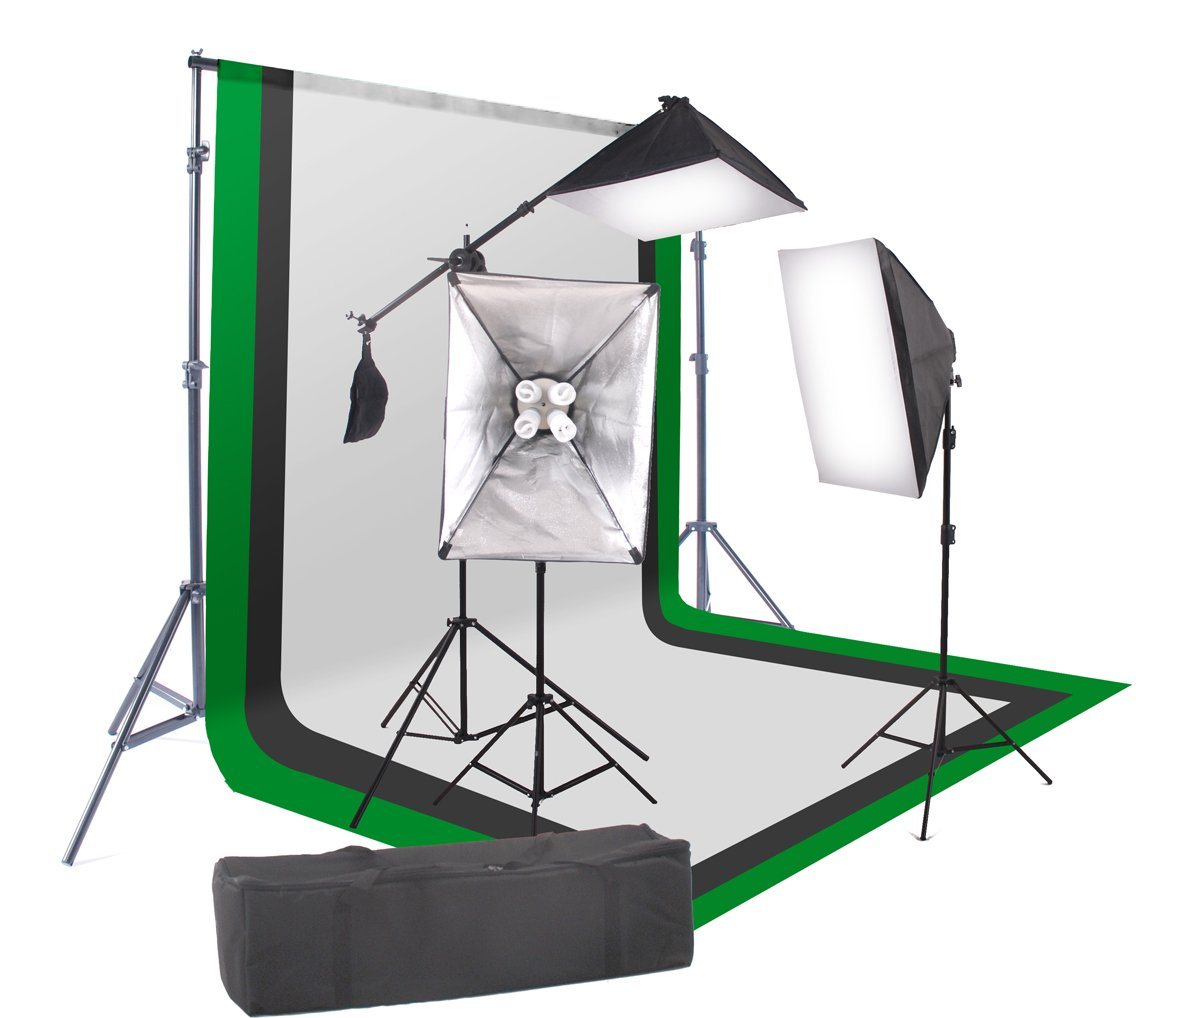 StudioFX 2400 Watt Softbox Continuous Photo Lighting Kit 16''x24'' + Boom Arm and 6'x9' Black, White, Chromakey green Backdrop with Support Stand for Photography Video Studio H9004SB-69BWG by Kaezi